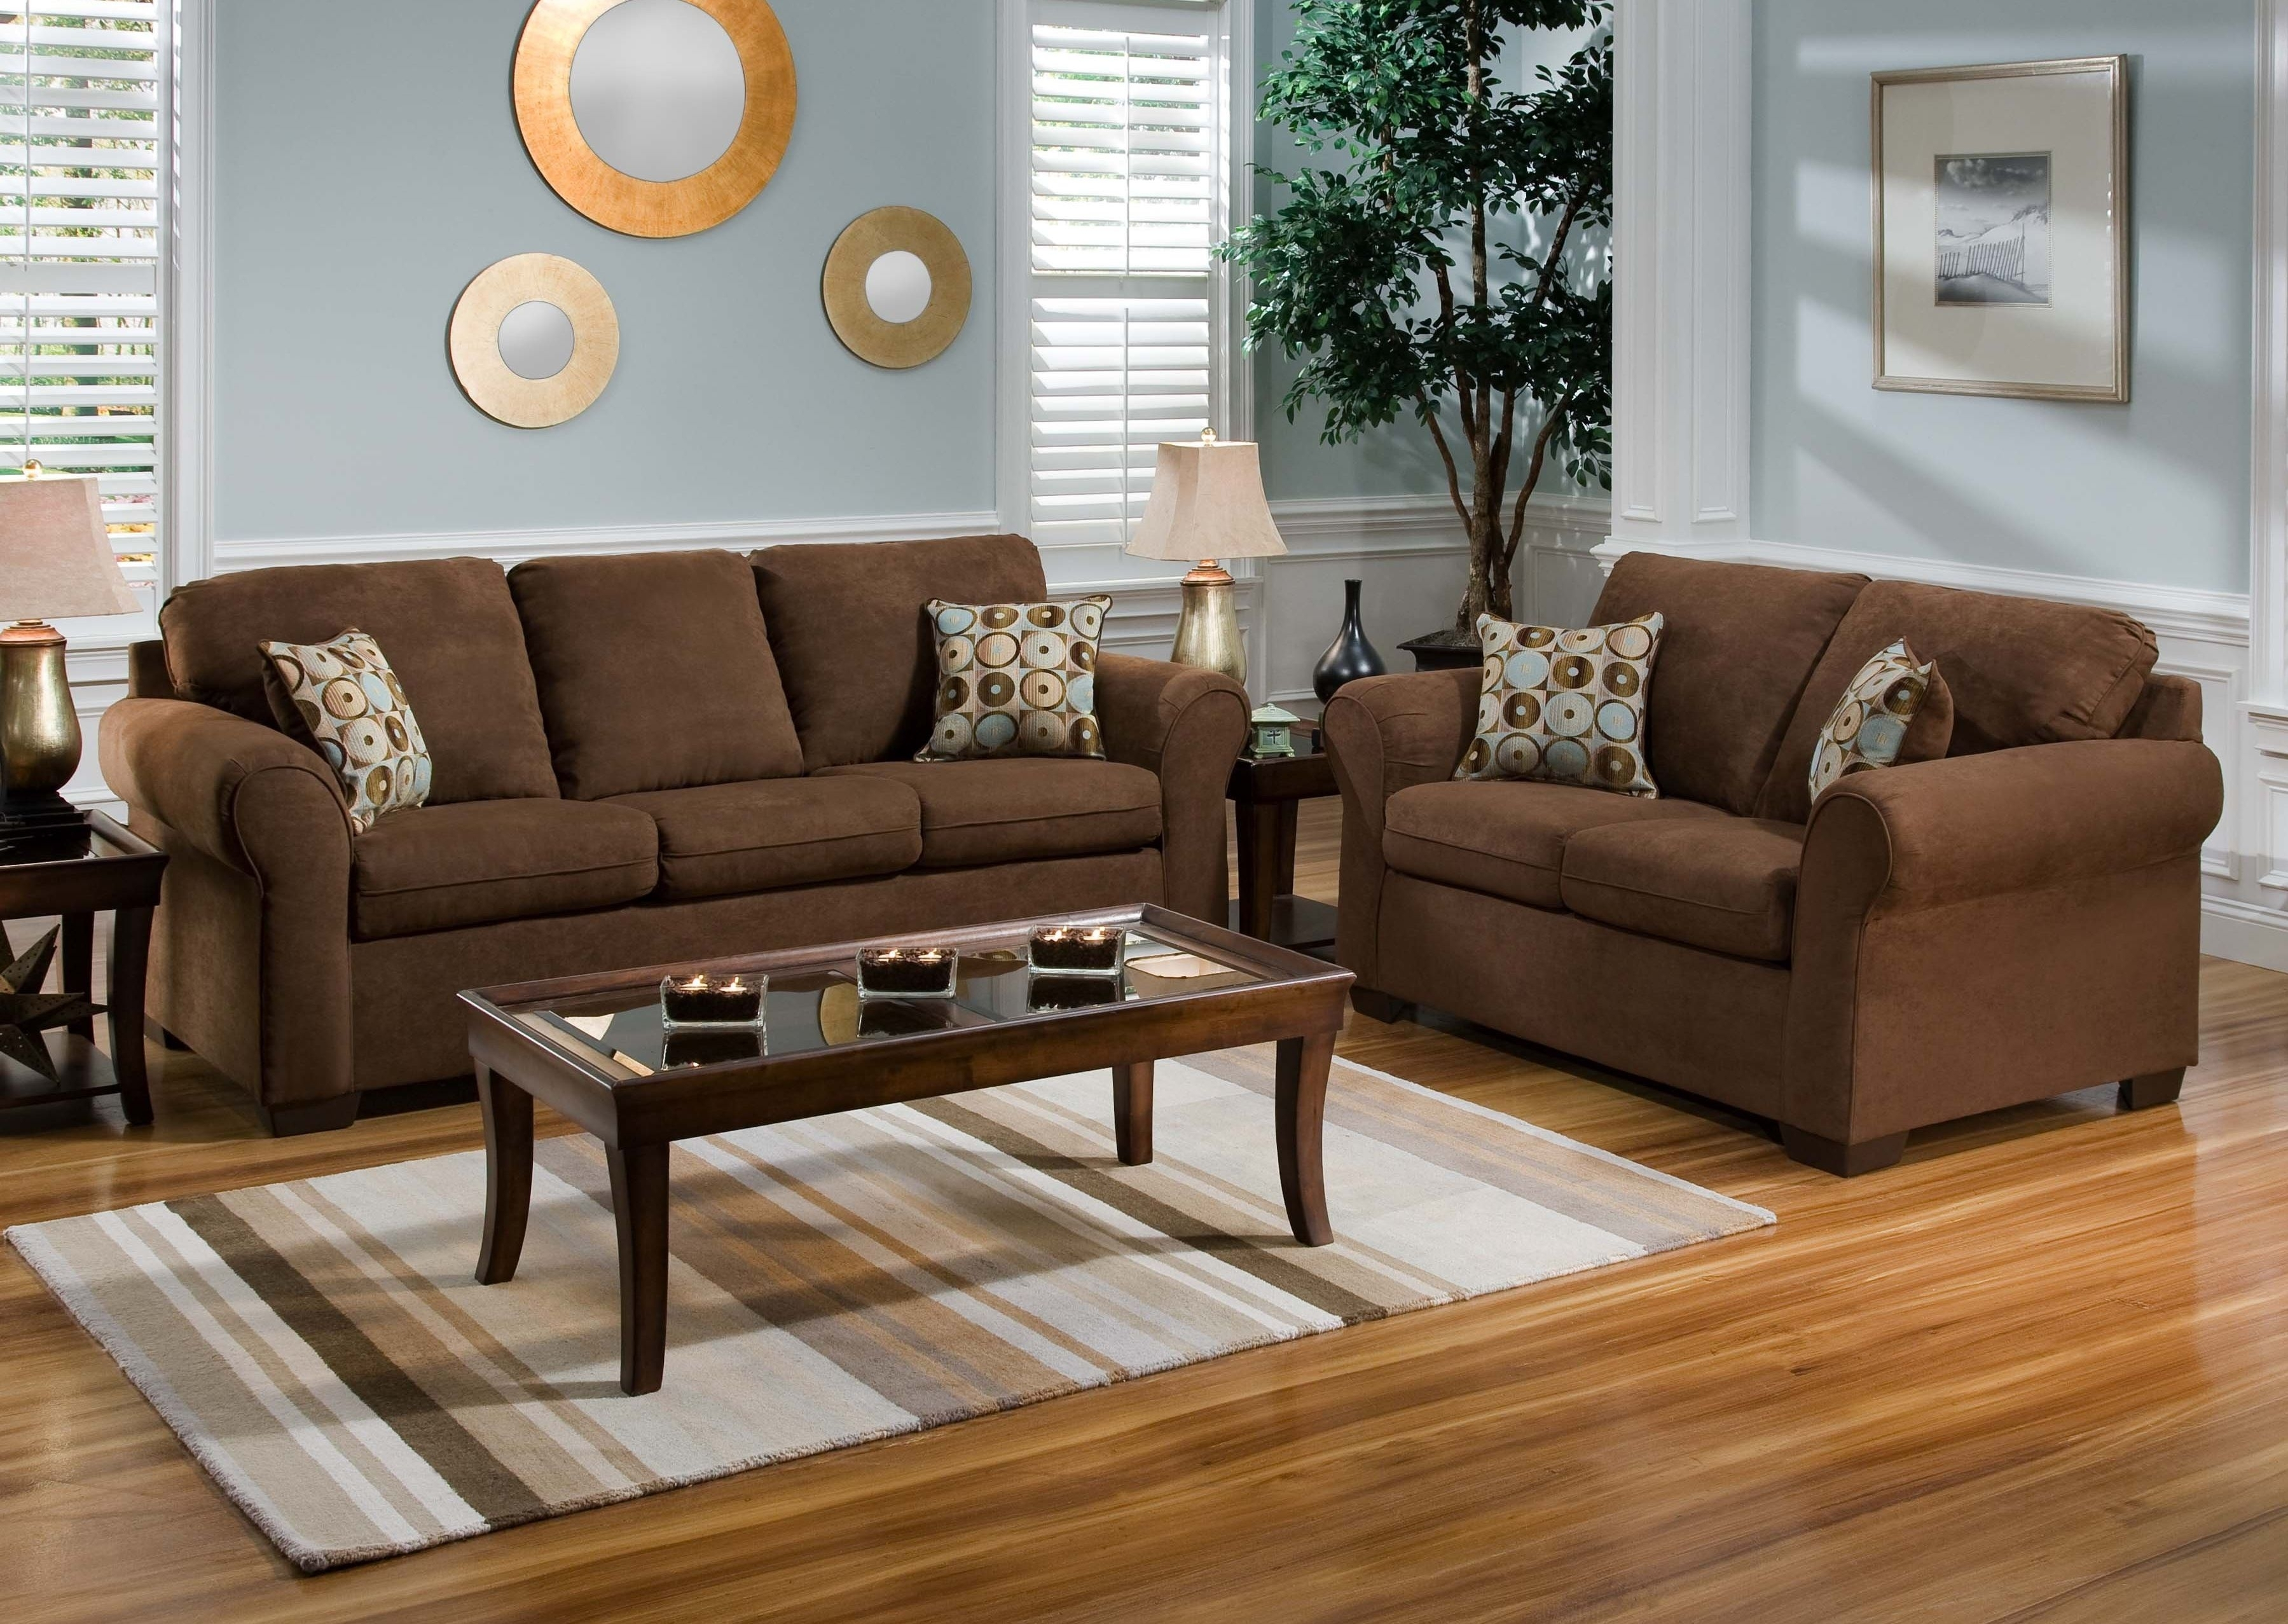 Decor That Looks Good With Saddle Brown Leather Couch